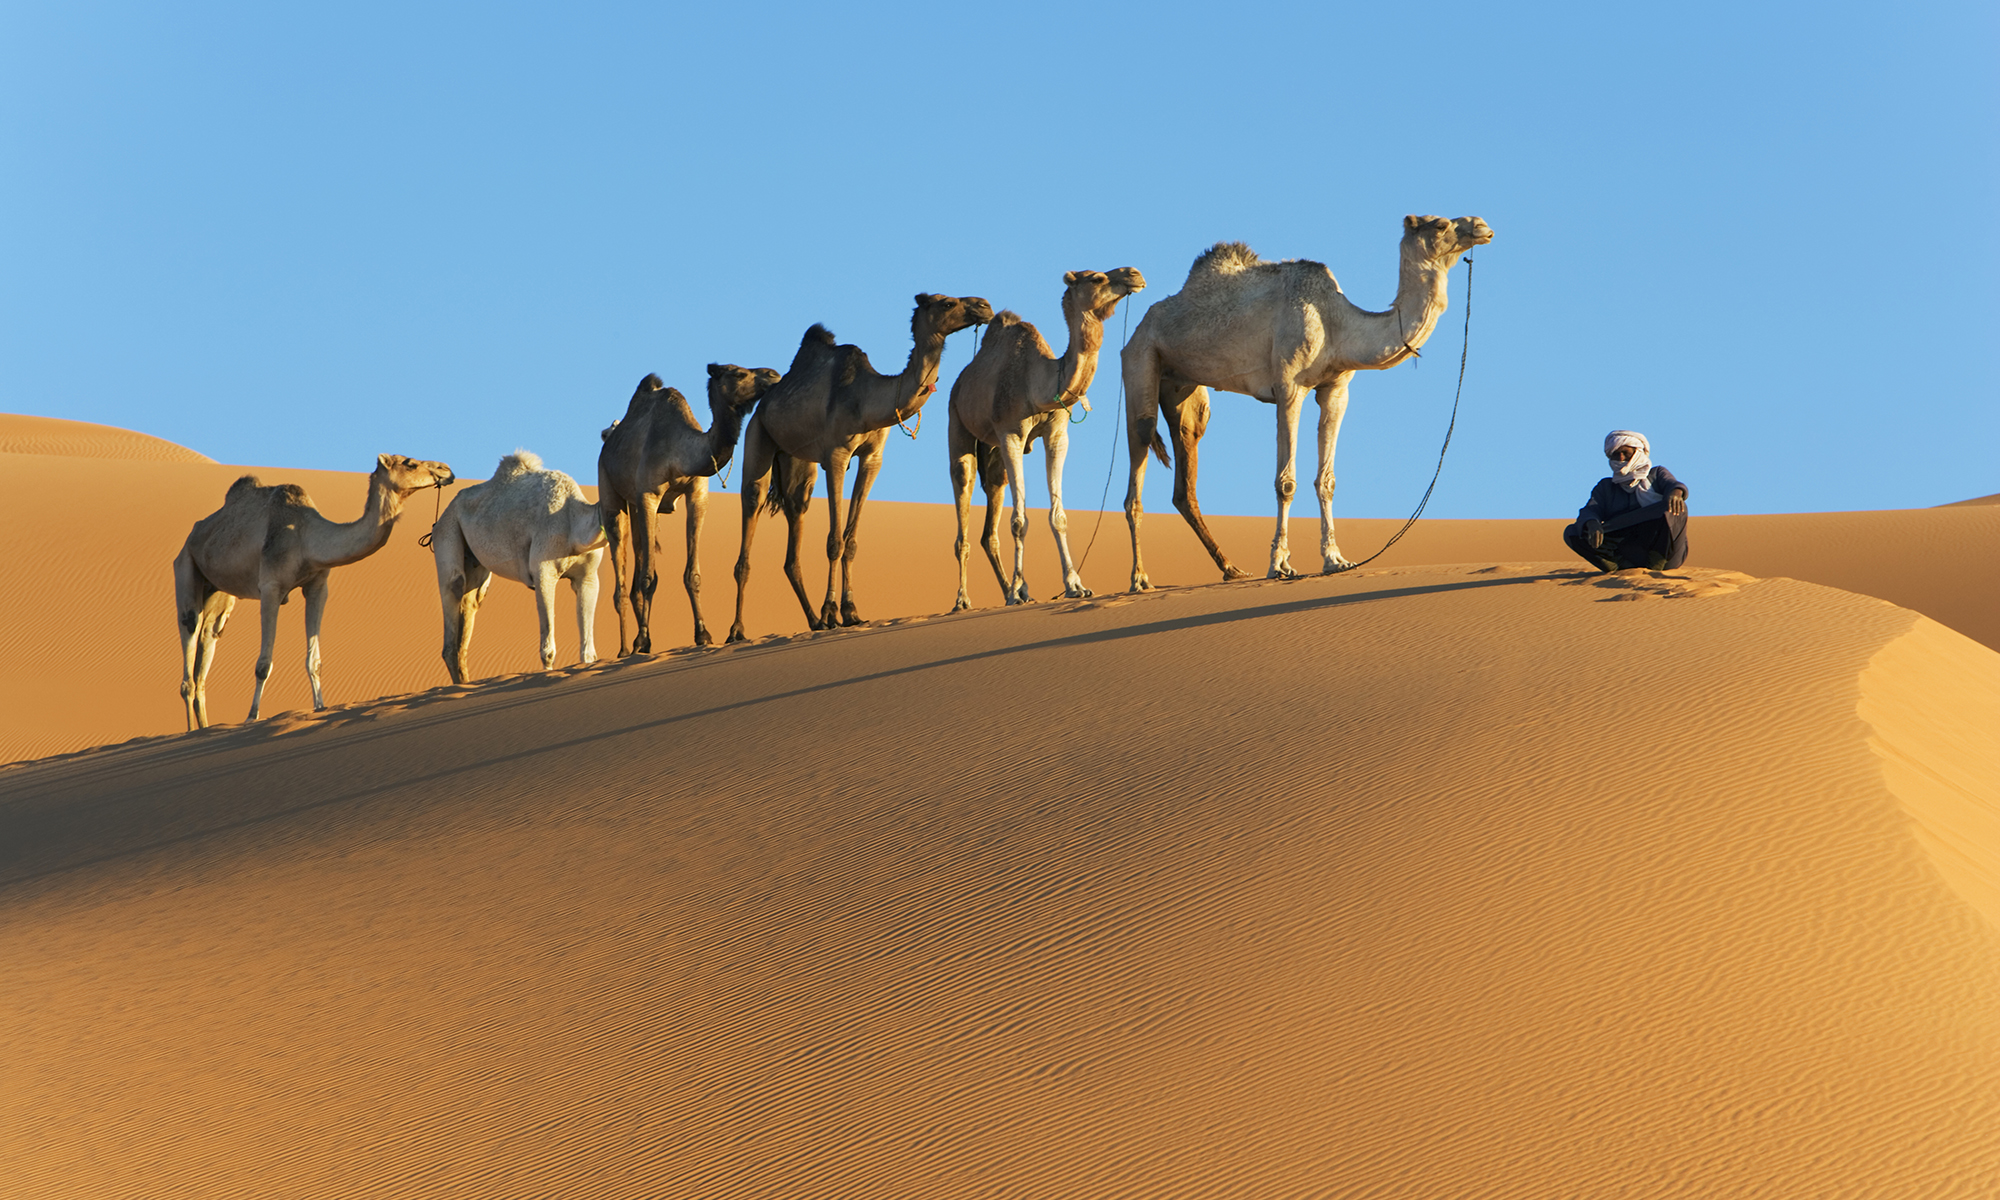 Camel Humps and Other Water-saving Tactics - Camel Humps